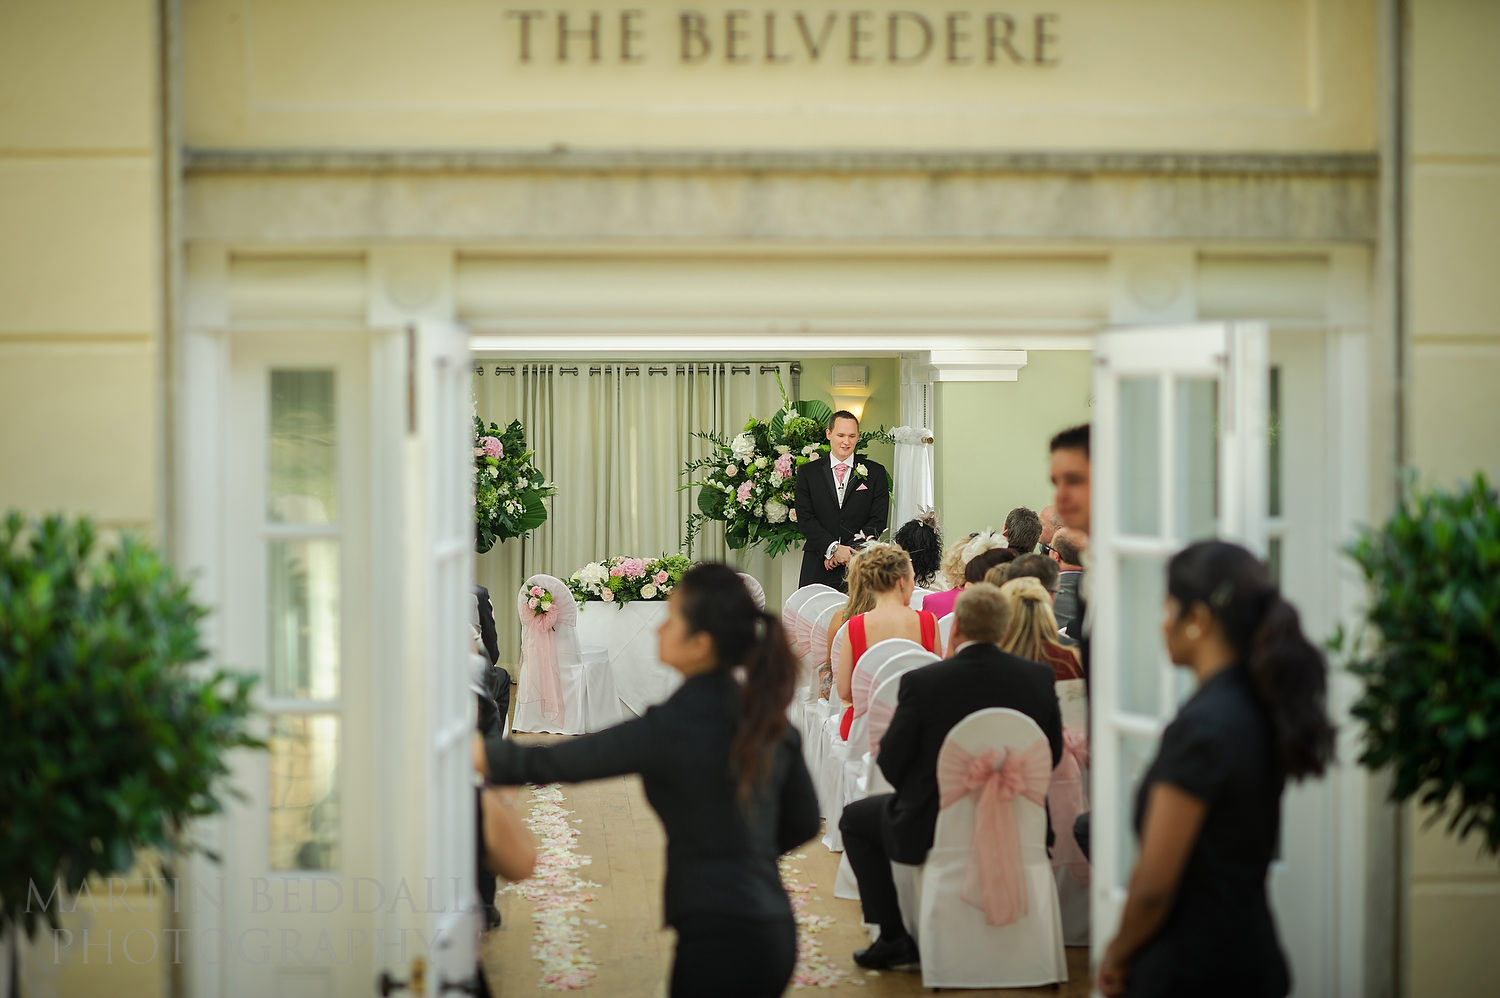 Groom waits at The Belvedere at Pembroke Lodge